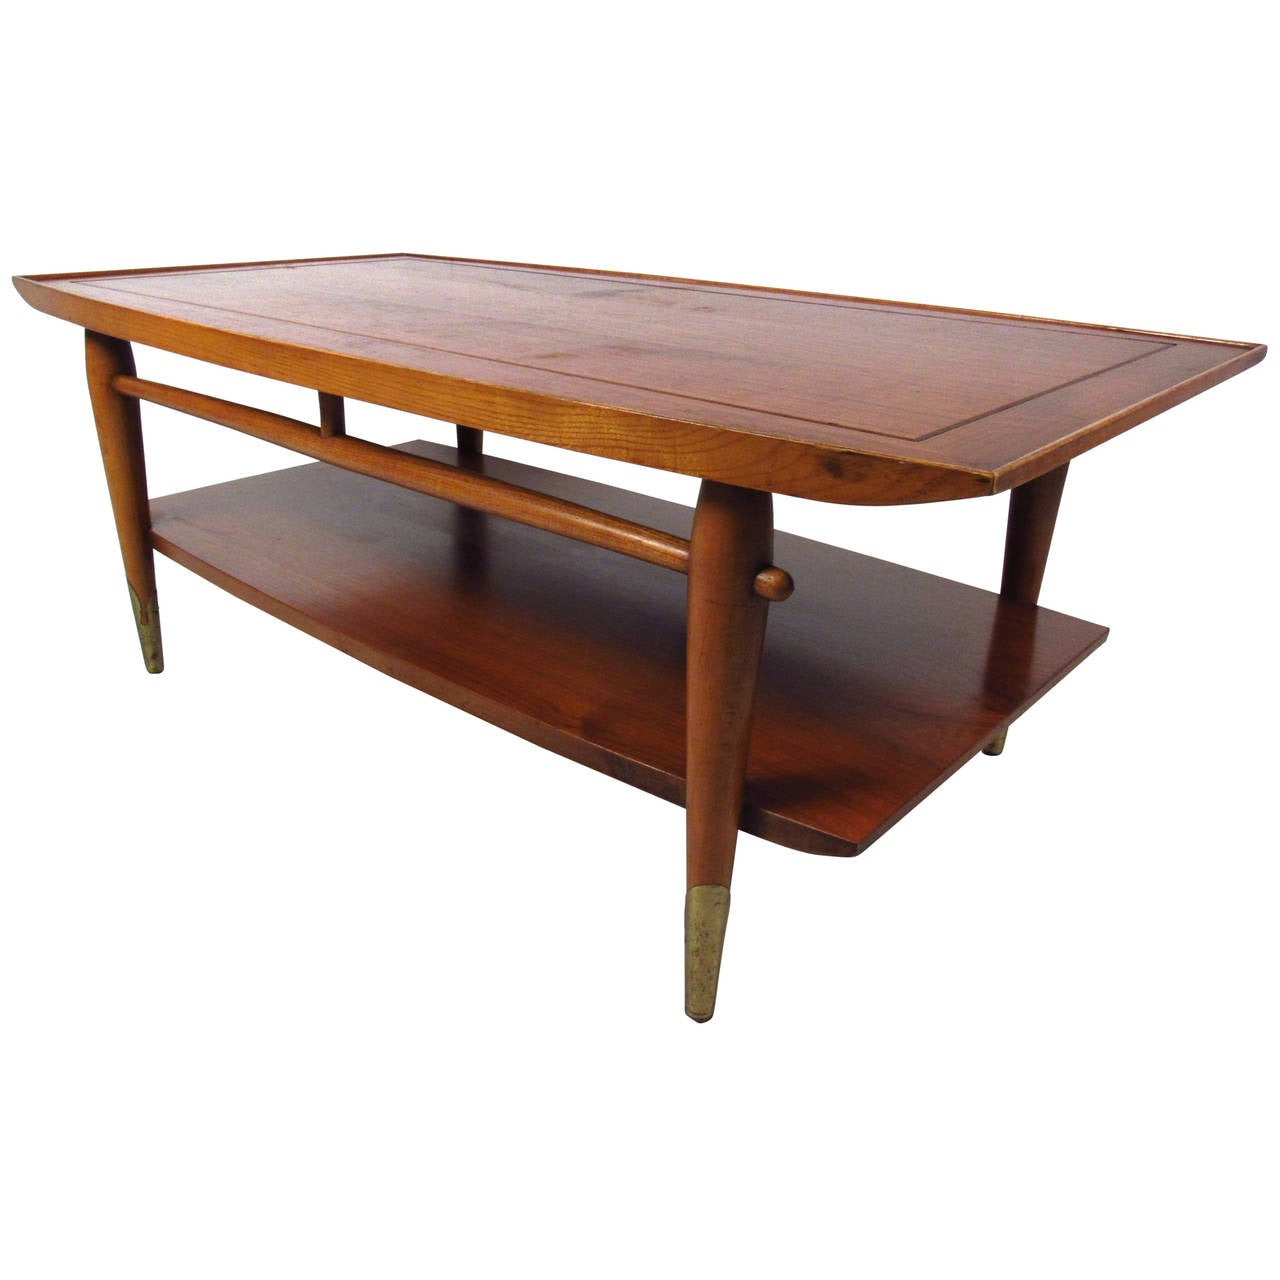 mid century modern two tier lane coffee table for sale at 1stdibs. Black Bedroom Furniture Sets. Home Design Ideas